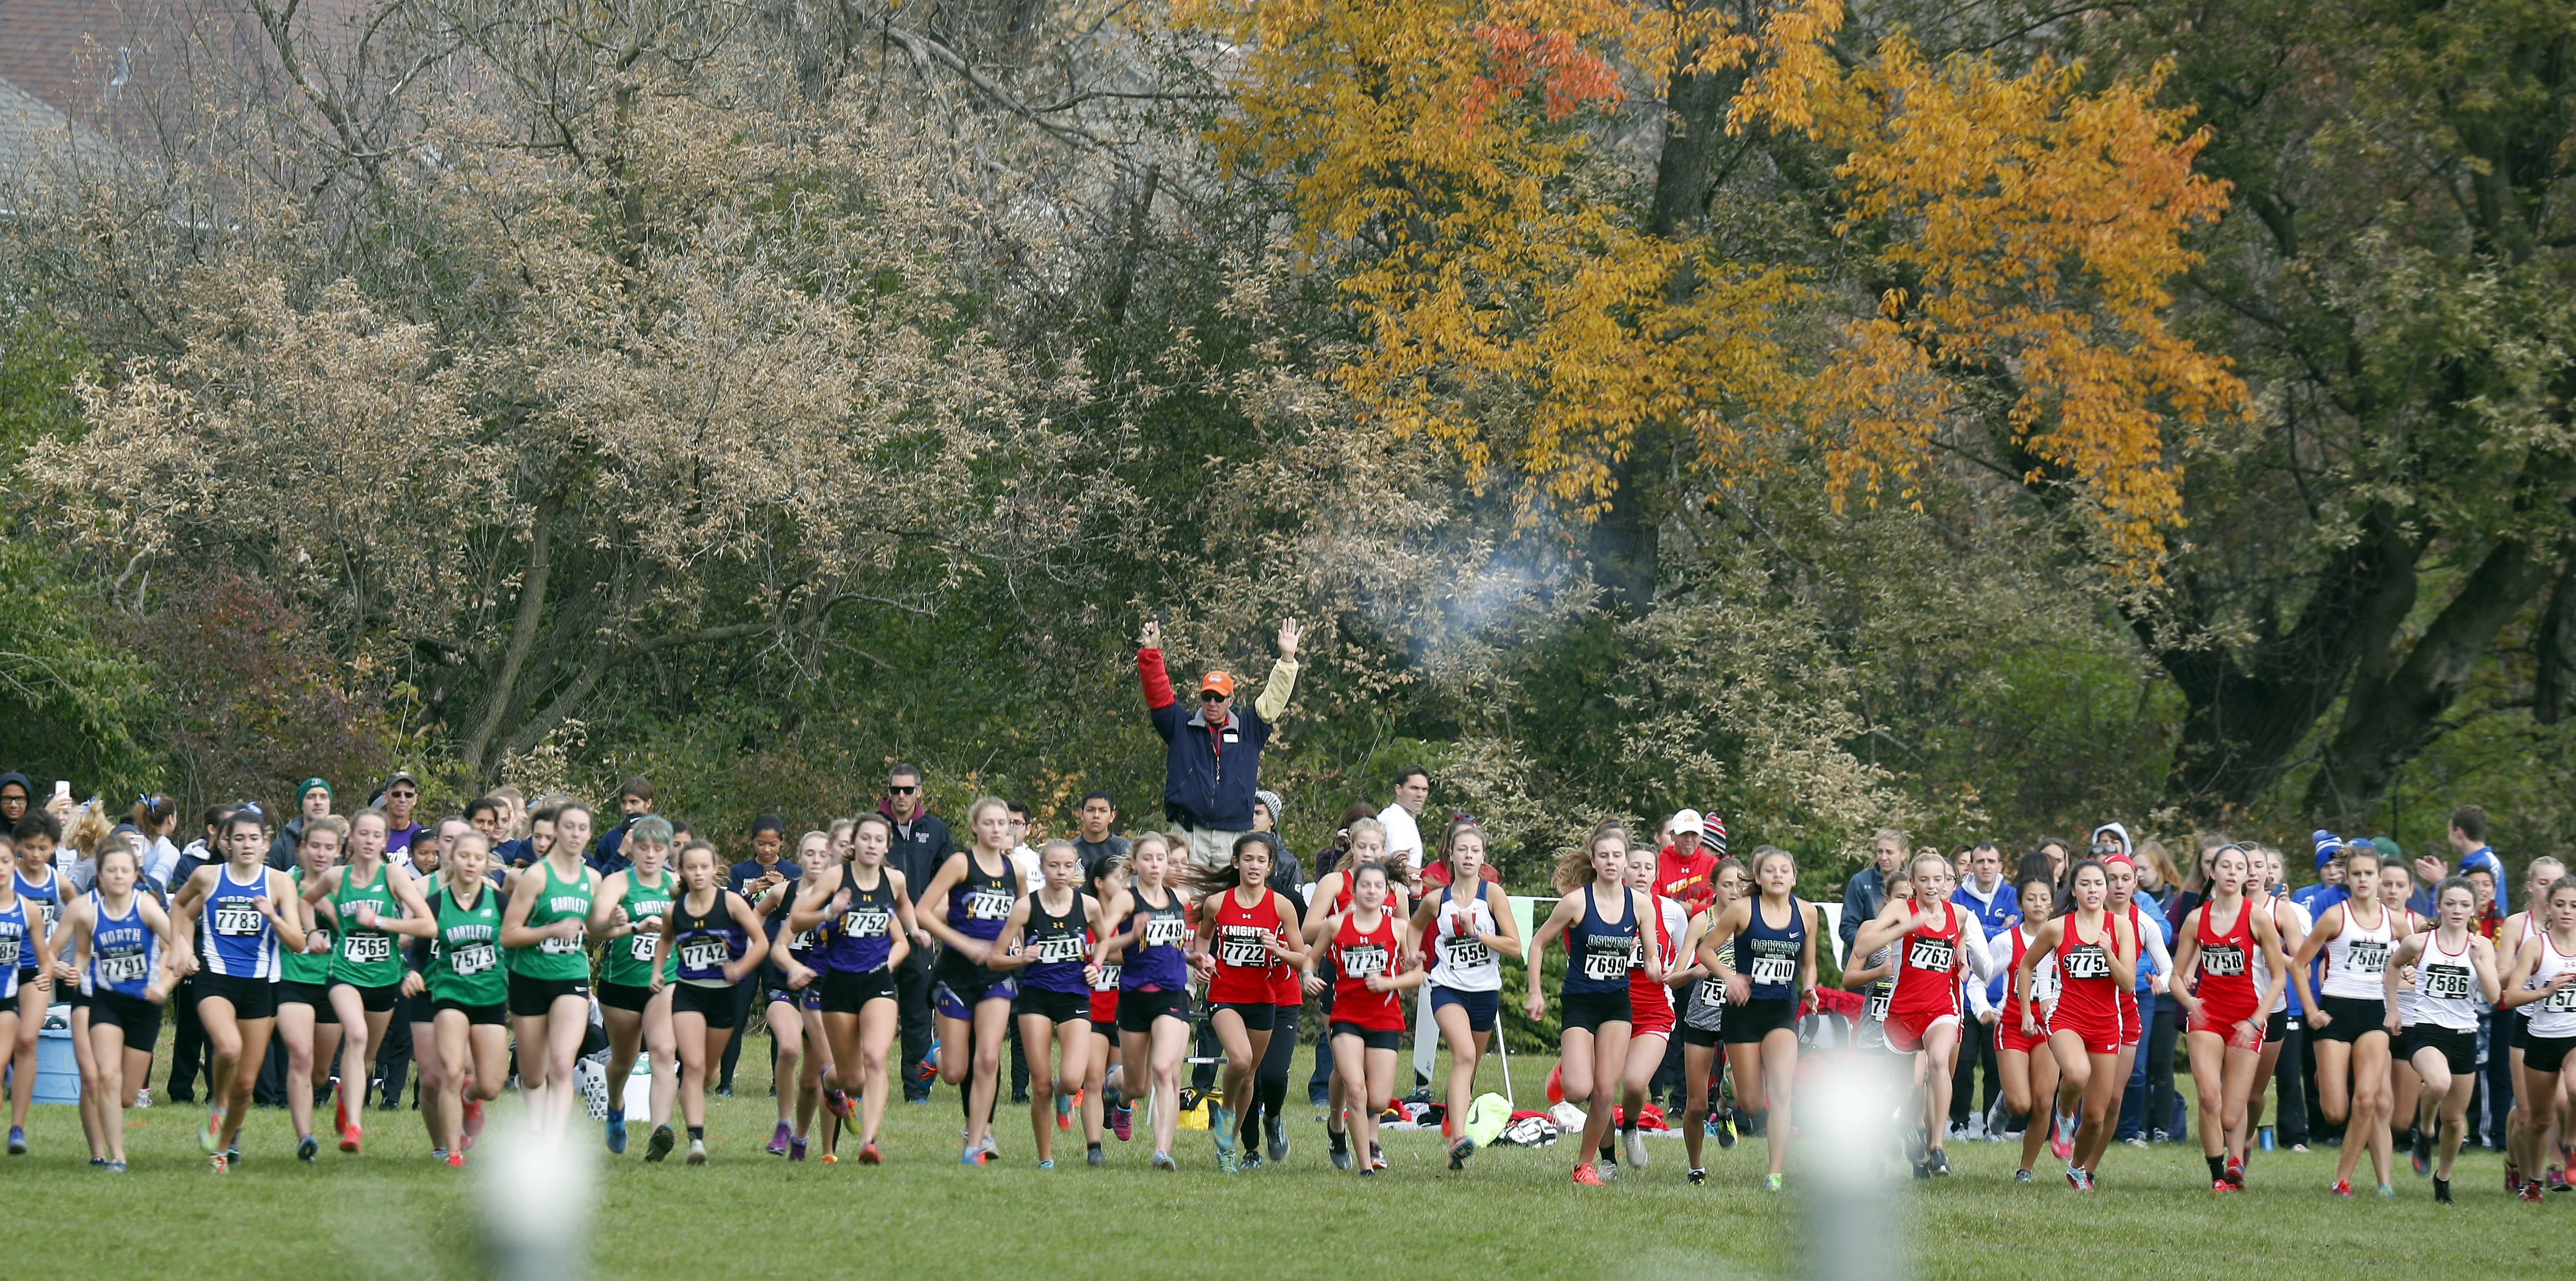 The start of the girls race Saturday during the Waubonsie Valley cross country sectional in Aurora.